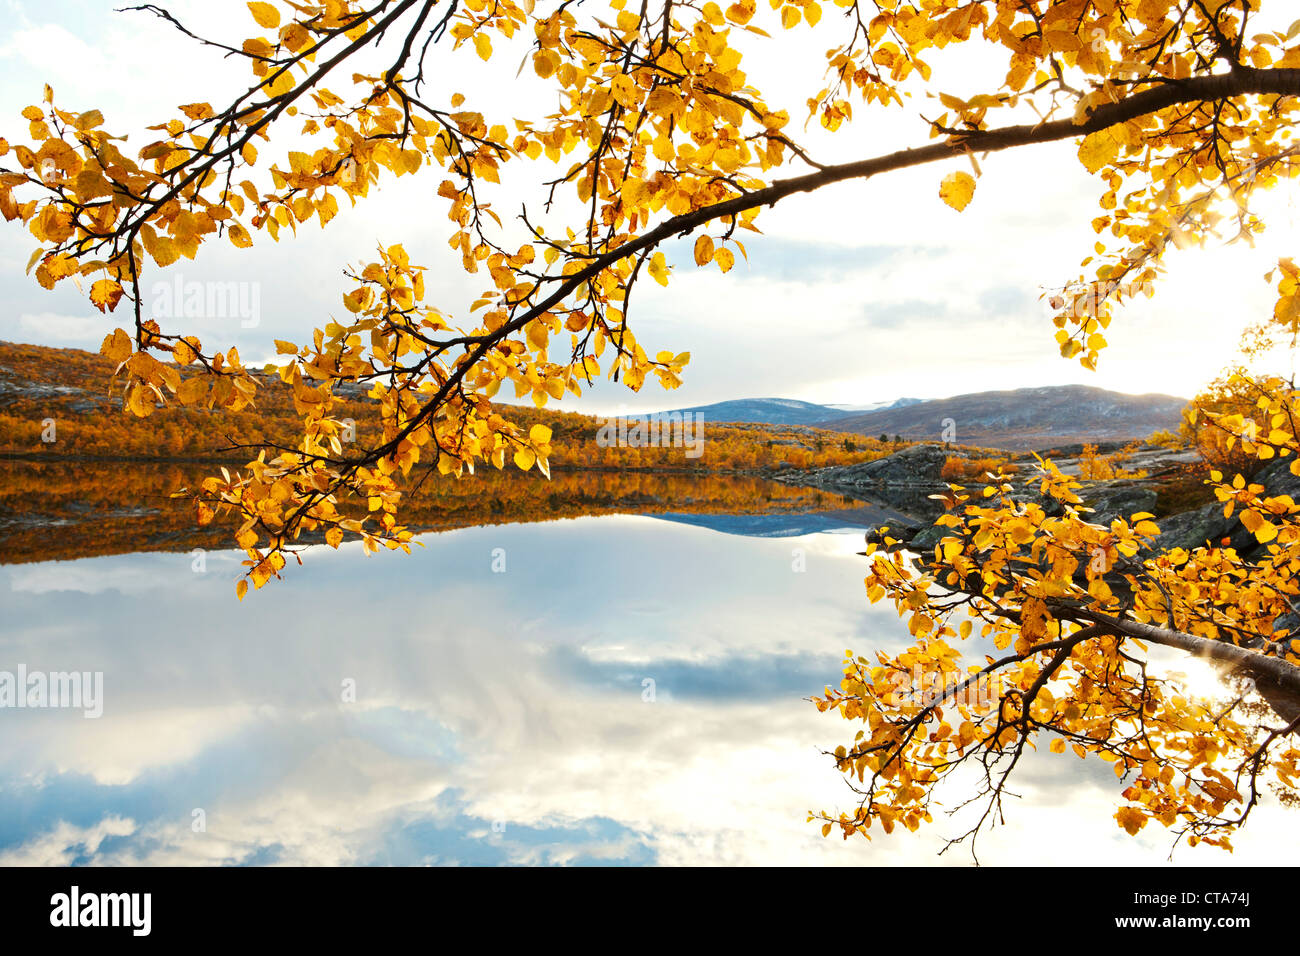 Rocky landscape with birch trees at a lake north of the arctic circle, Saltdal, Junkerdalen national park, trekking - Stock Image